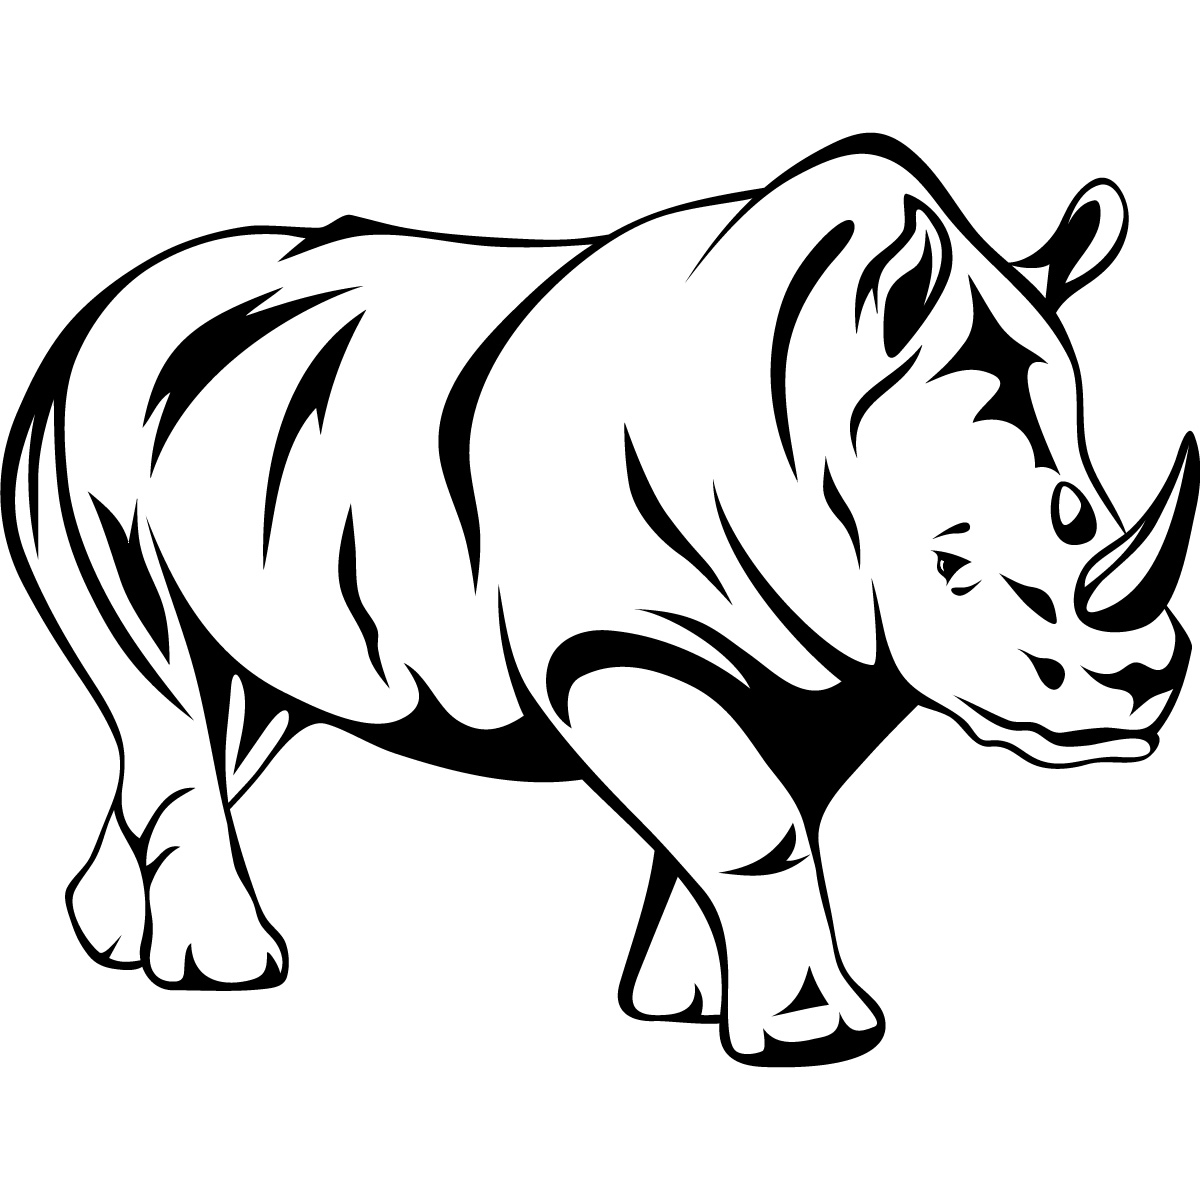 Line Art Animals Drawings : Animal line drawings clipart best